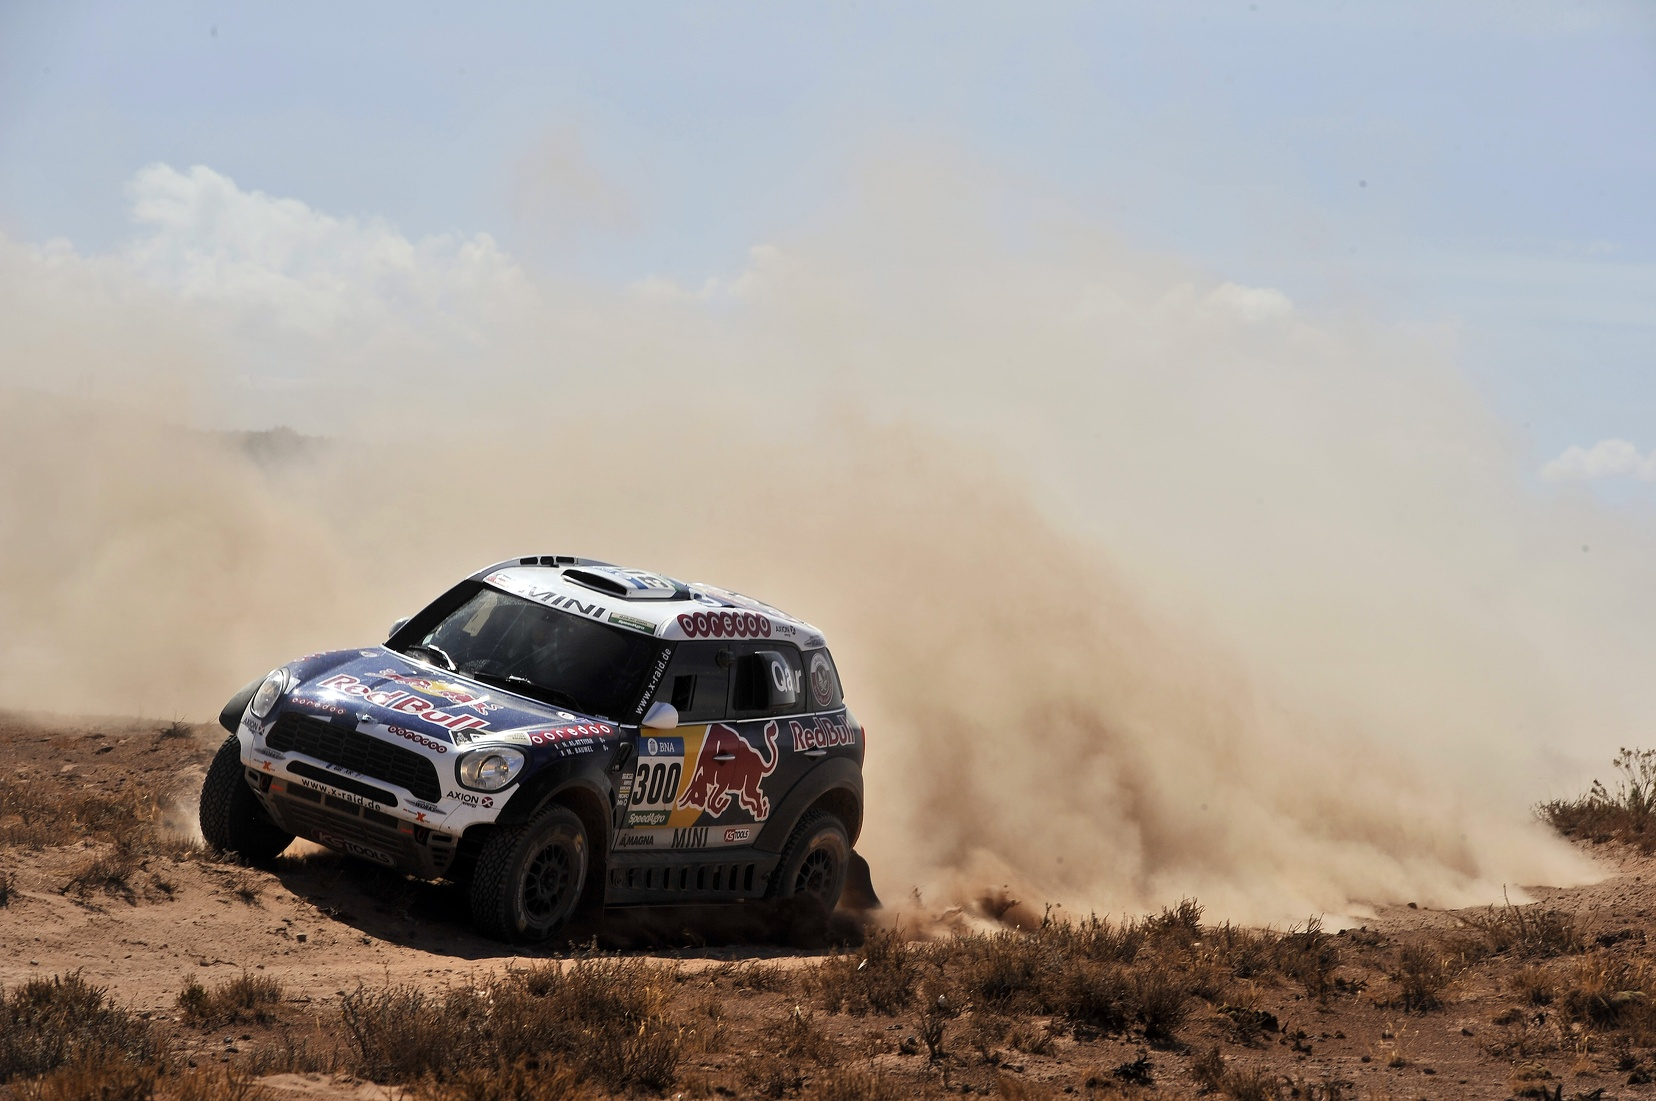 Rallye Dakar 2016 – Tag acht, Etappe 7: Zwei MINI ALL4 Racing in den Top-5